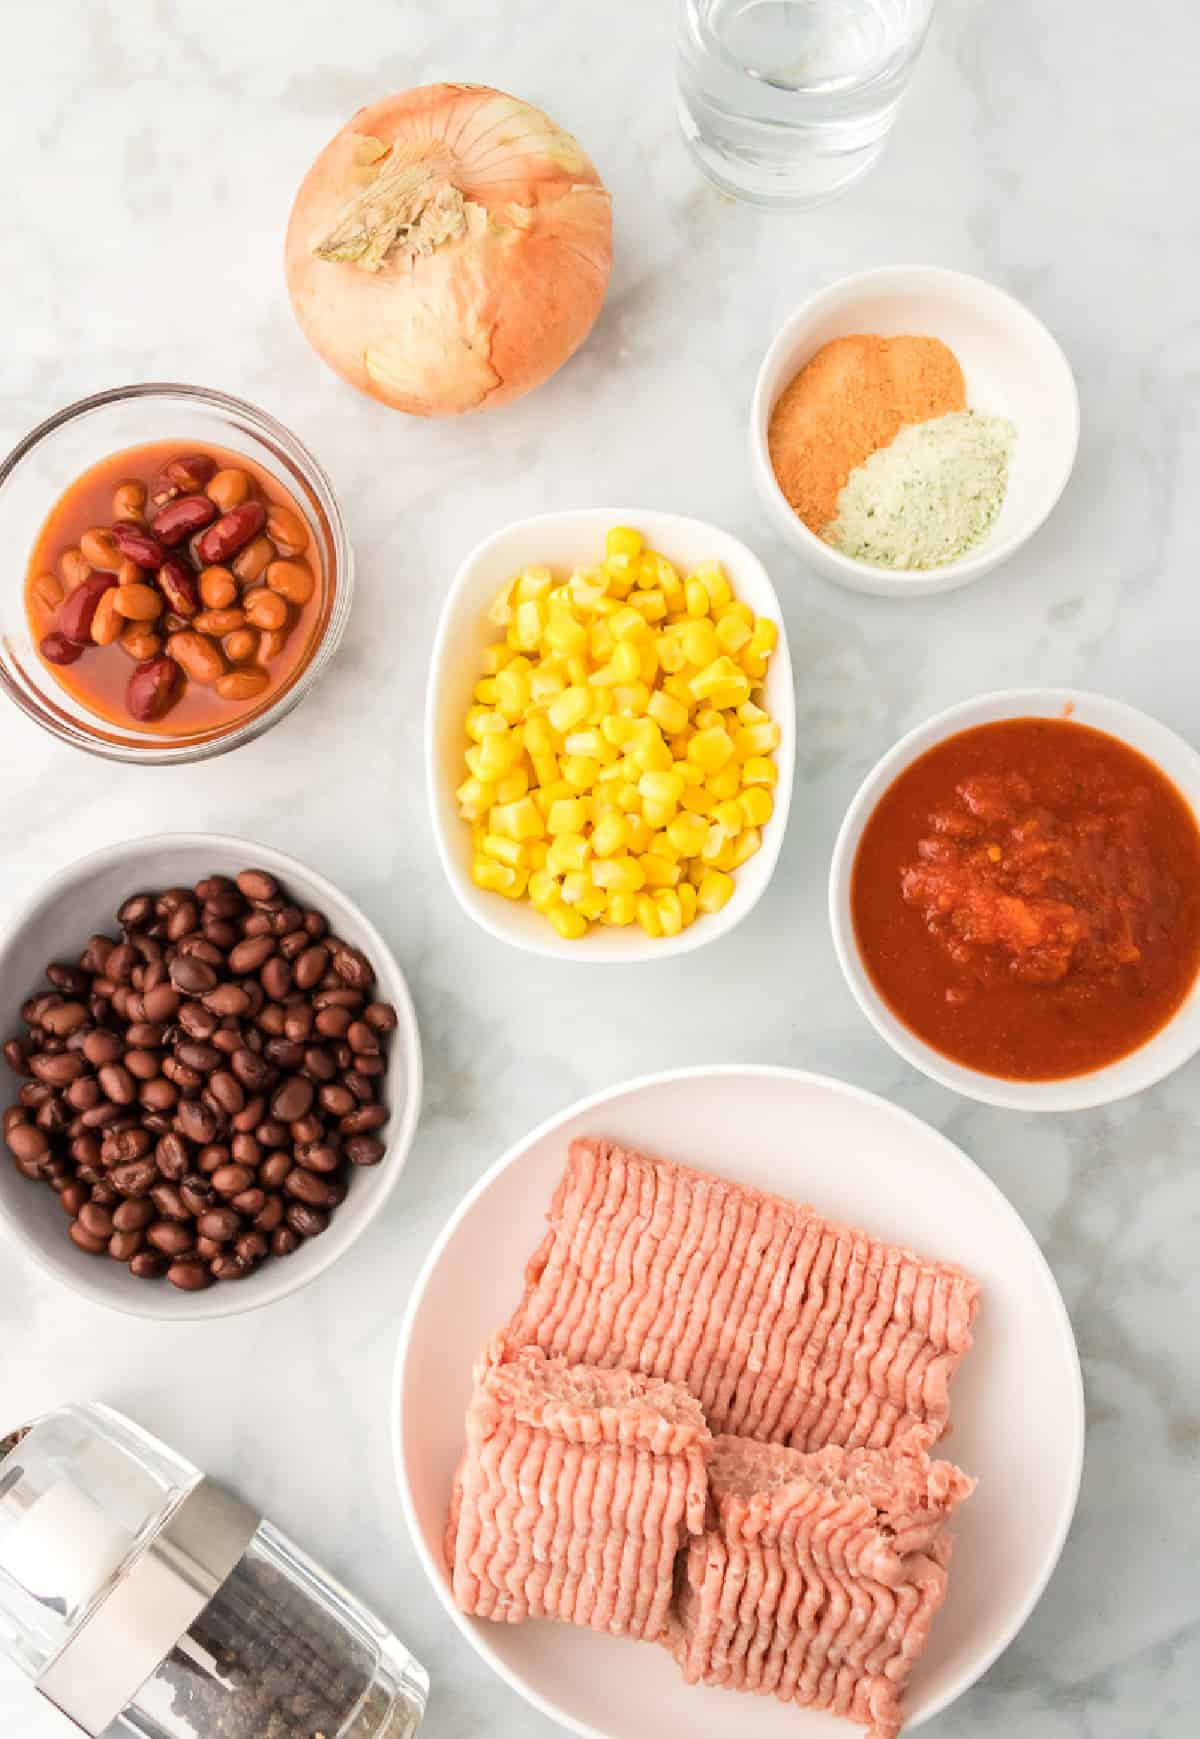 A photo of all the ingredients needed for slow cooker taco soup.